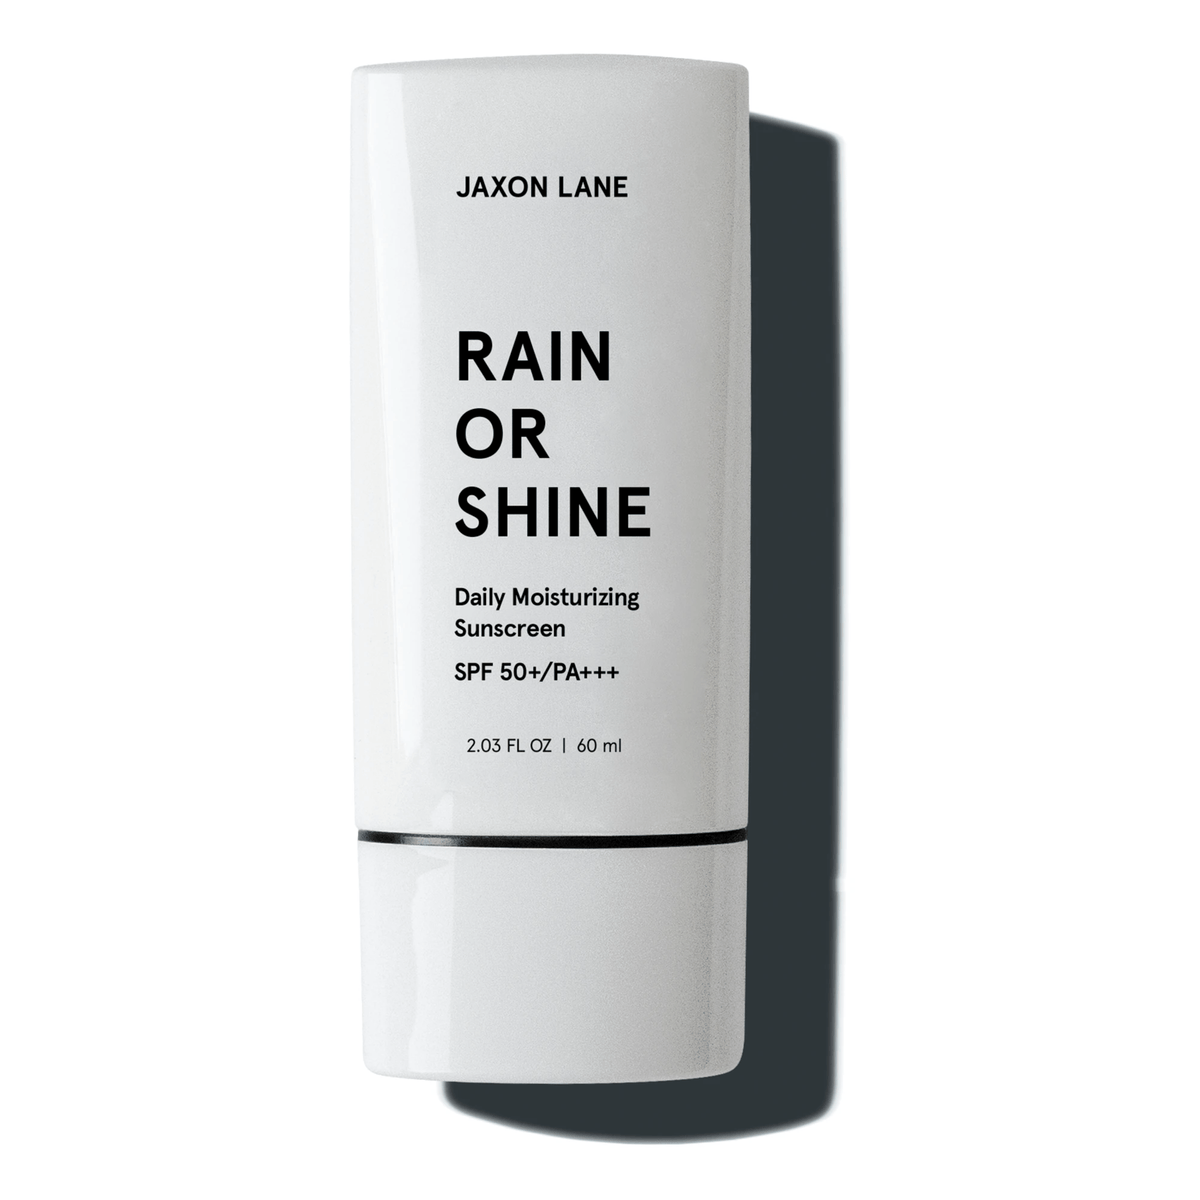 Rain or Shine - Daily Moisturising Sunscreen SPF 50+